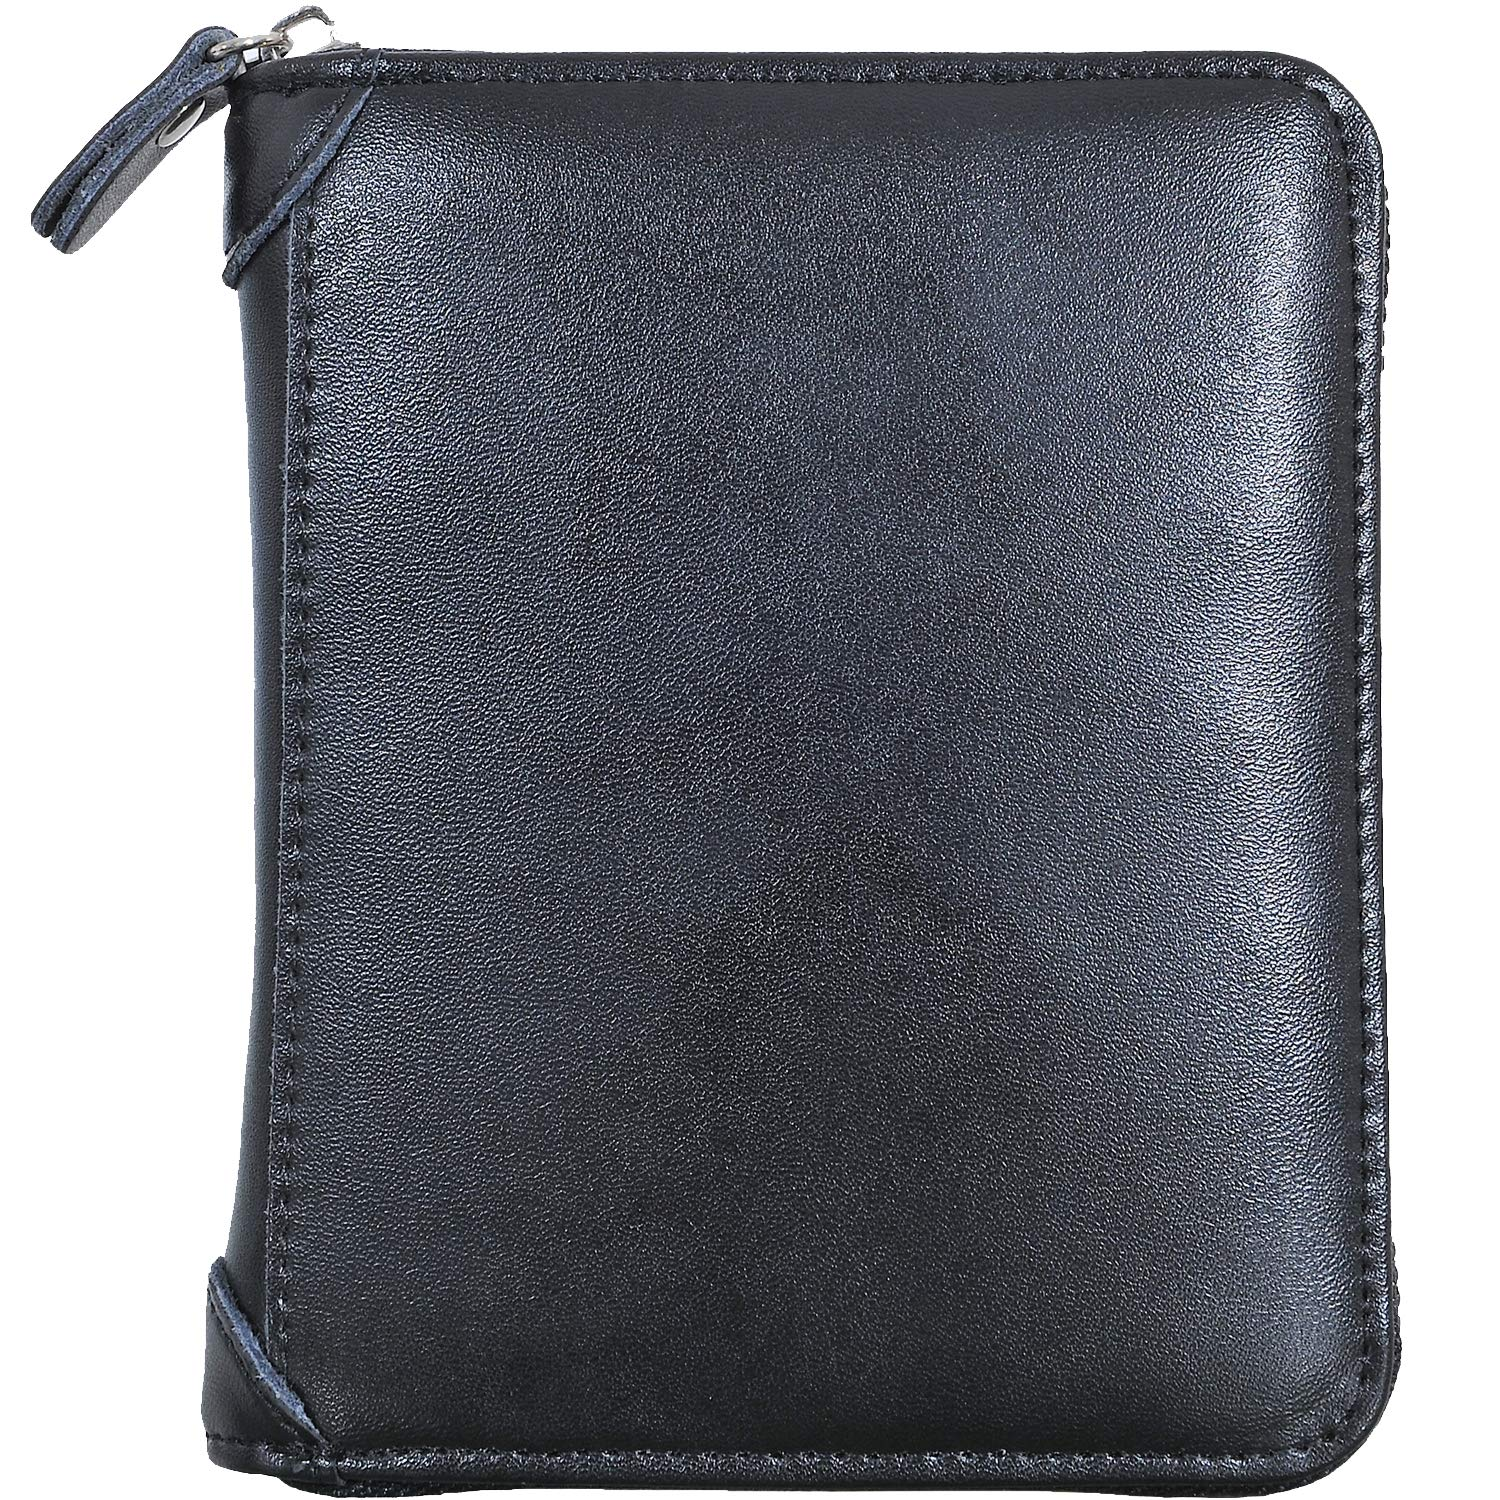 Yuhan Pretty Credit Card Holder Wallet Large Leather Passport Case 42 Card Slots